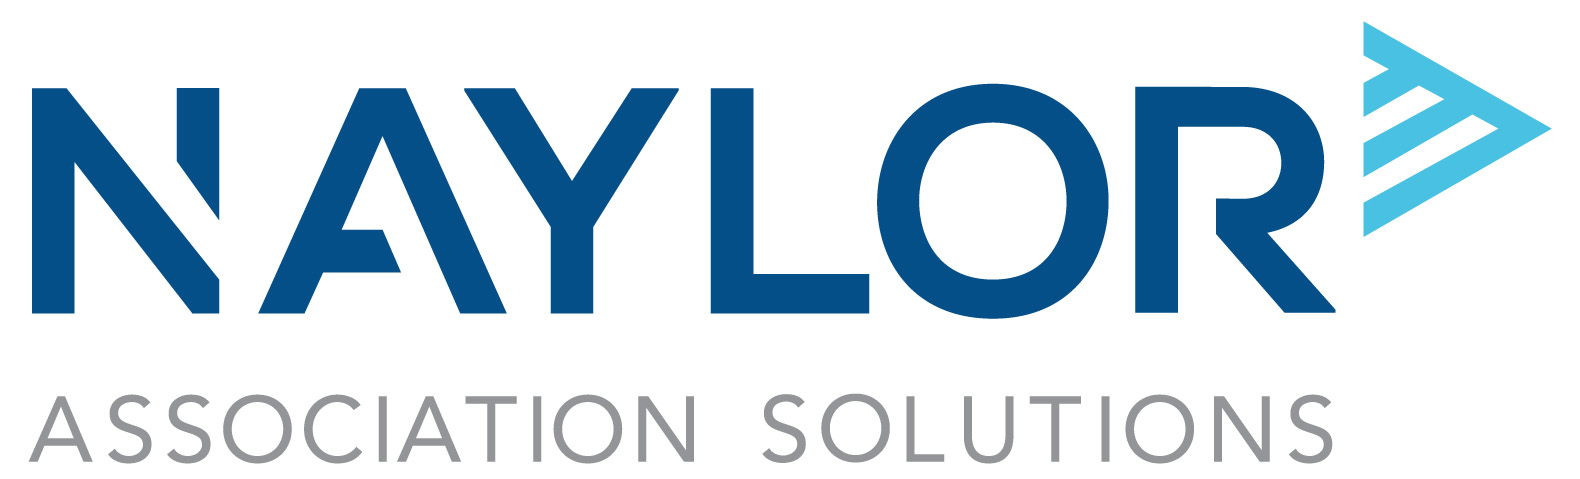 Naylor Association Solutions, Inc.